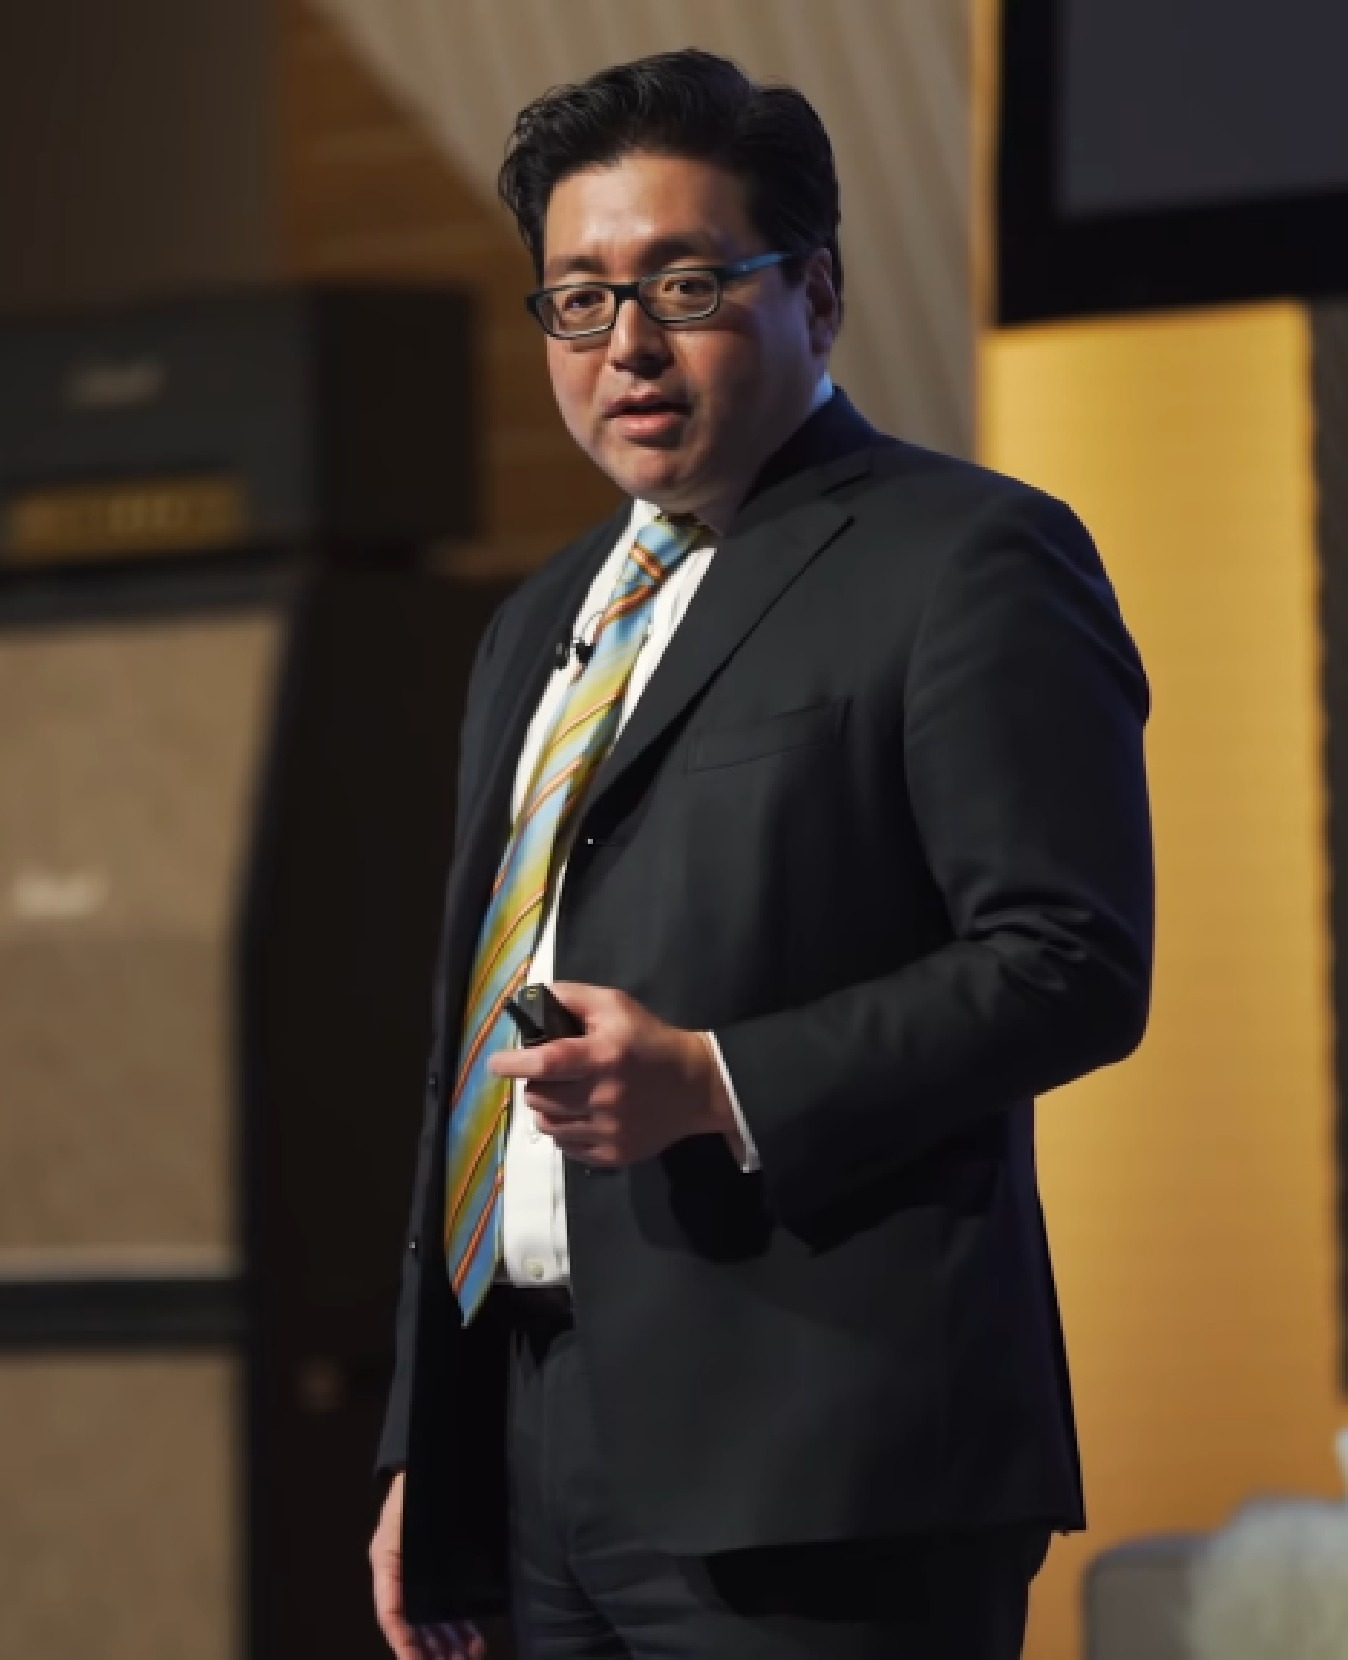 Tom Lee, former Chief Equity Strategist at global investment bank JPMorgan